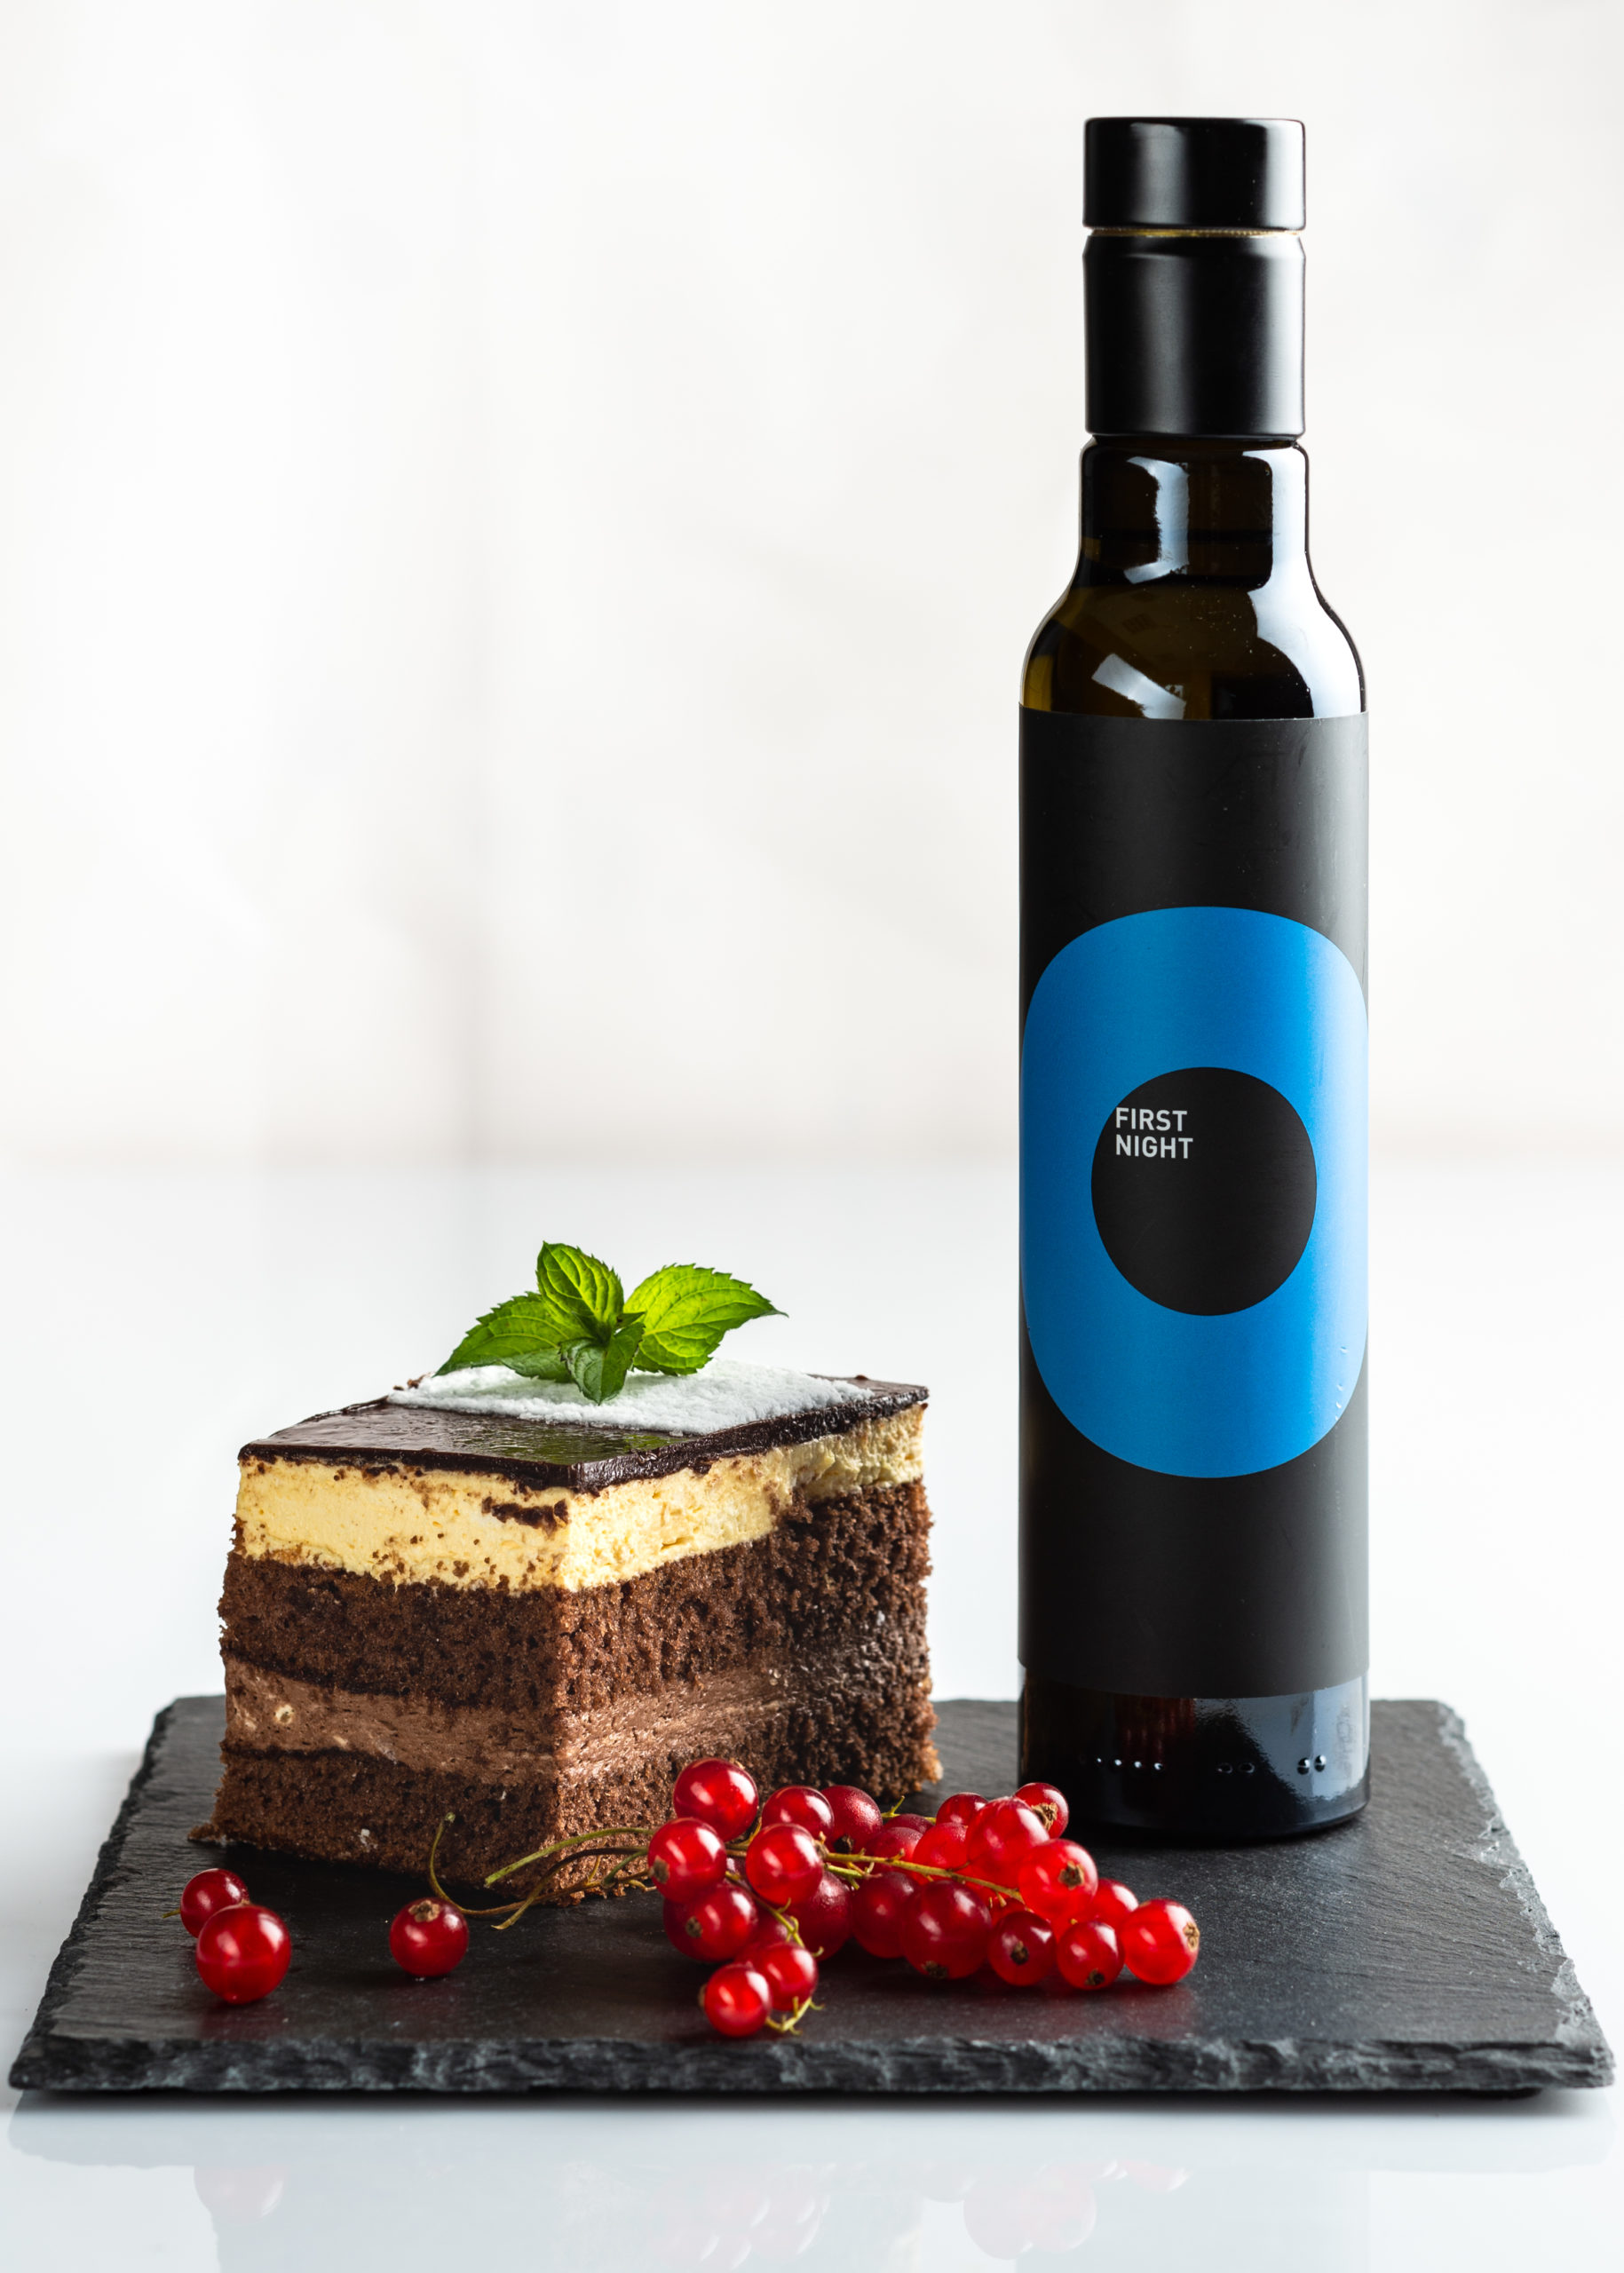 hren | plethora of creativity // B10 Istrian Fusion Olive Oil product photography